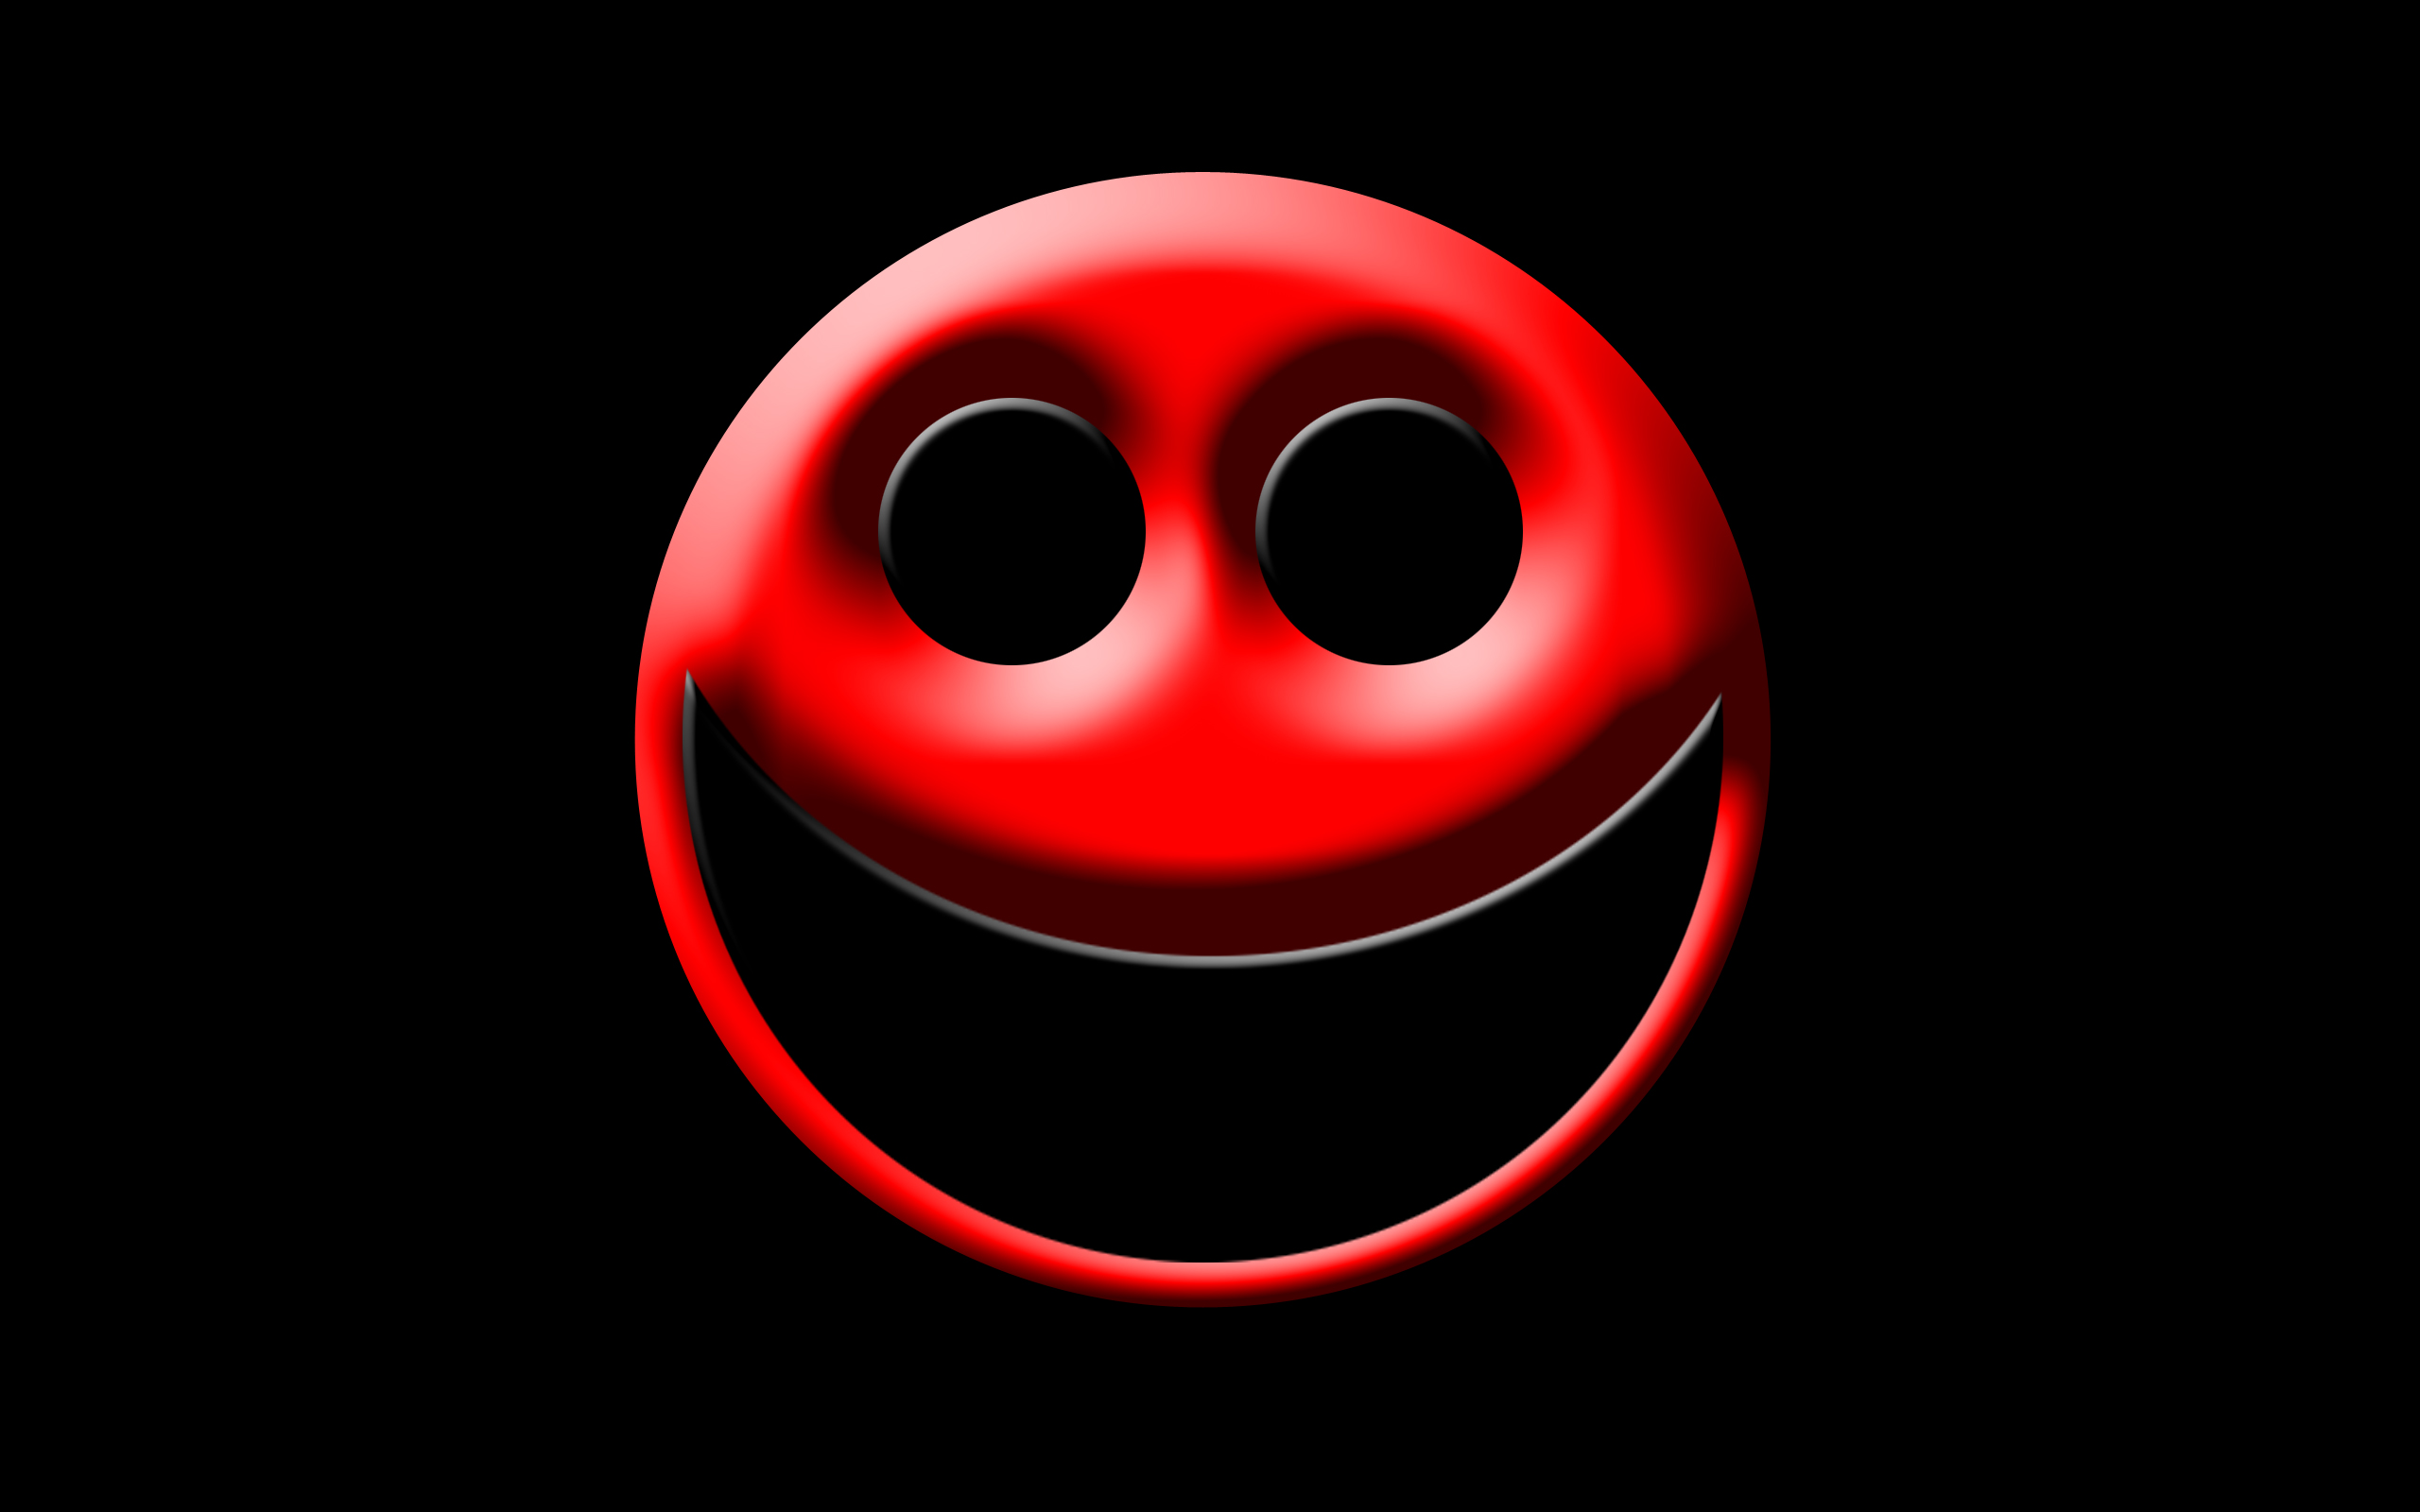 Wallpaper 24 Smiley Red and Black Wallpapers 2560x1600